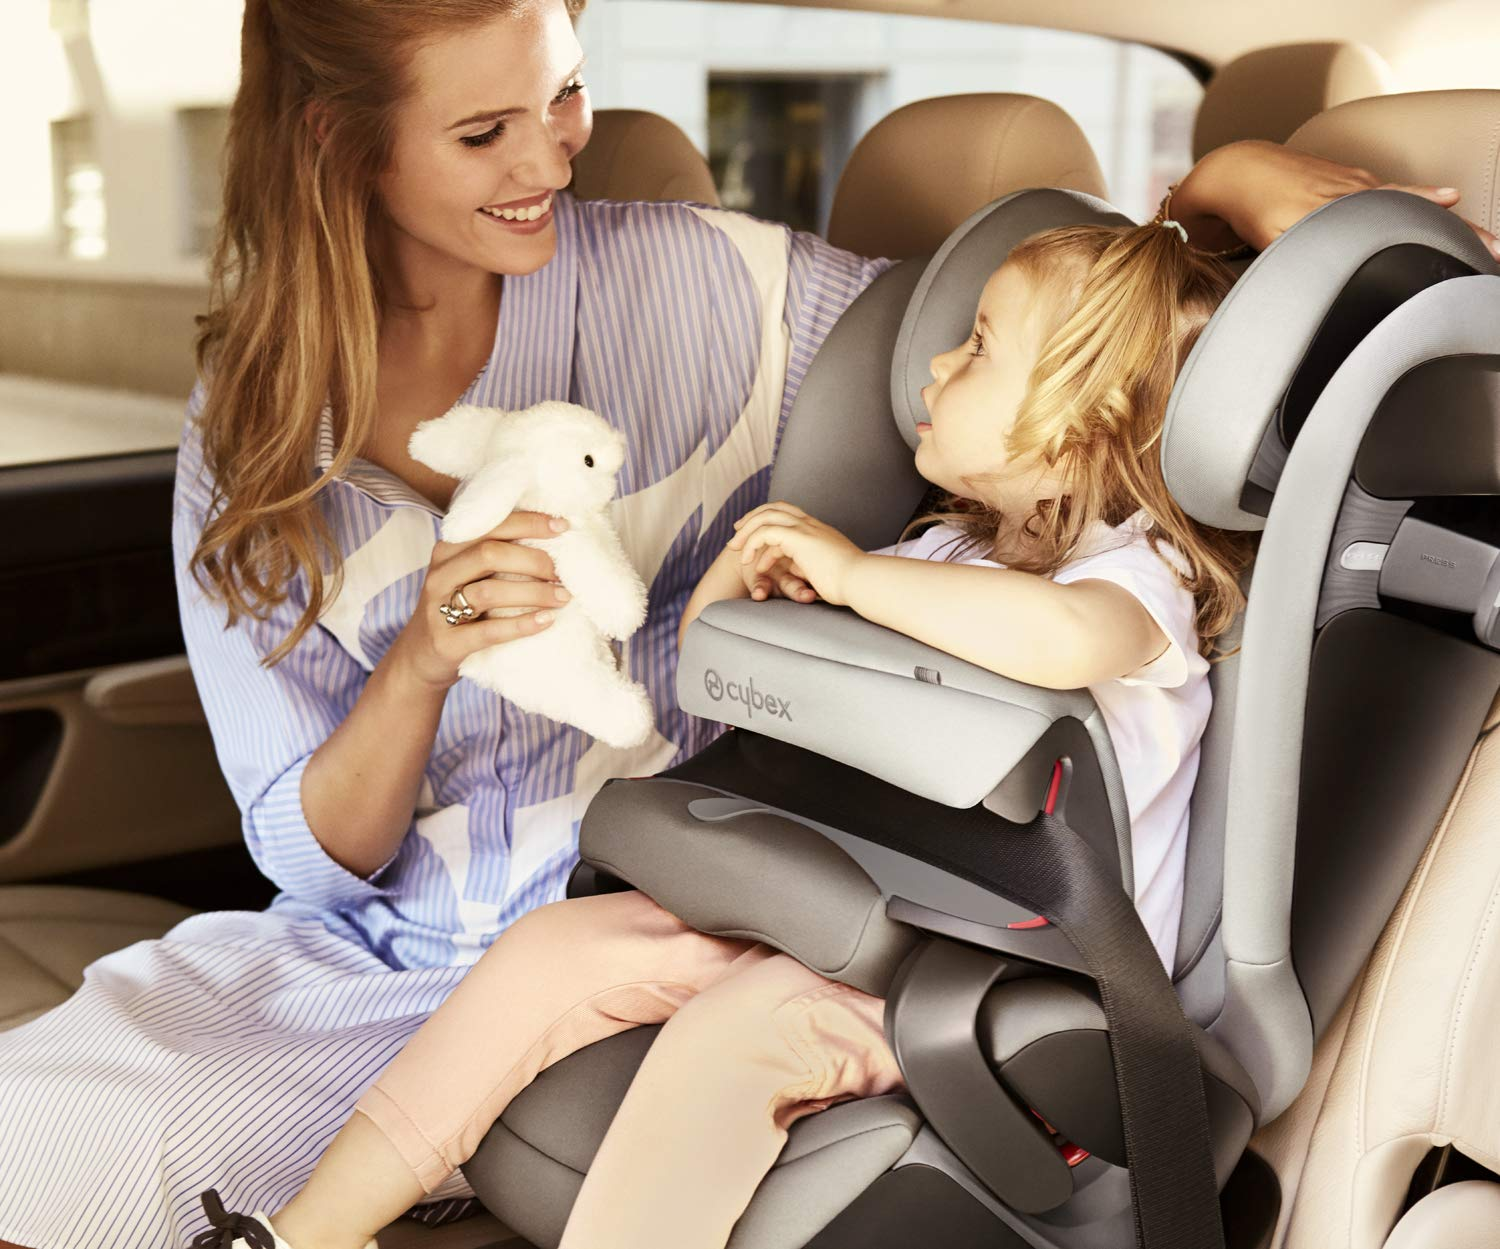 CYBEX Gold Pallas S-Fix 2-in-1 Child's Car Seat, For Cars with and without ISOFIX, Group 1/2/3 (9-36 kg), From approx. 9 Months to approx. 12 Years, Tropical Blue Cybex Sturdy and high-quality child car seat for long-term use - For children aged approx. 9 months to approx. 12 years (9-36 kg), Suitable for cars with and without ISOFIX Maximum safety - Depth-adjustable impact shield, 3-way adjustable reclining headrest, Built-in side impact protection (L.S.P. System), Energy-absorbing shell 12-way height-adjustable comfort headrest, One-hand adjustable reclining position, Easy conversion to Solution S-Fix car seat for children 3 years and older (group 2/3) by removing impact shield and base 10